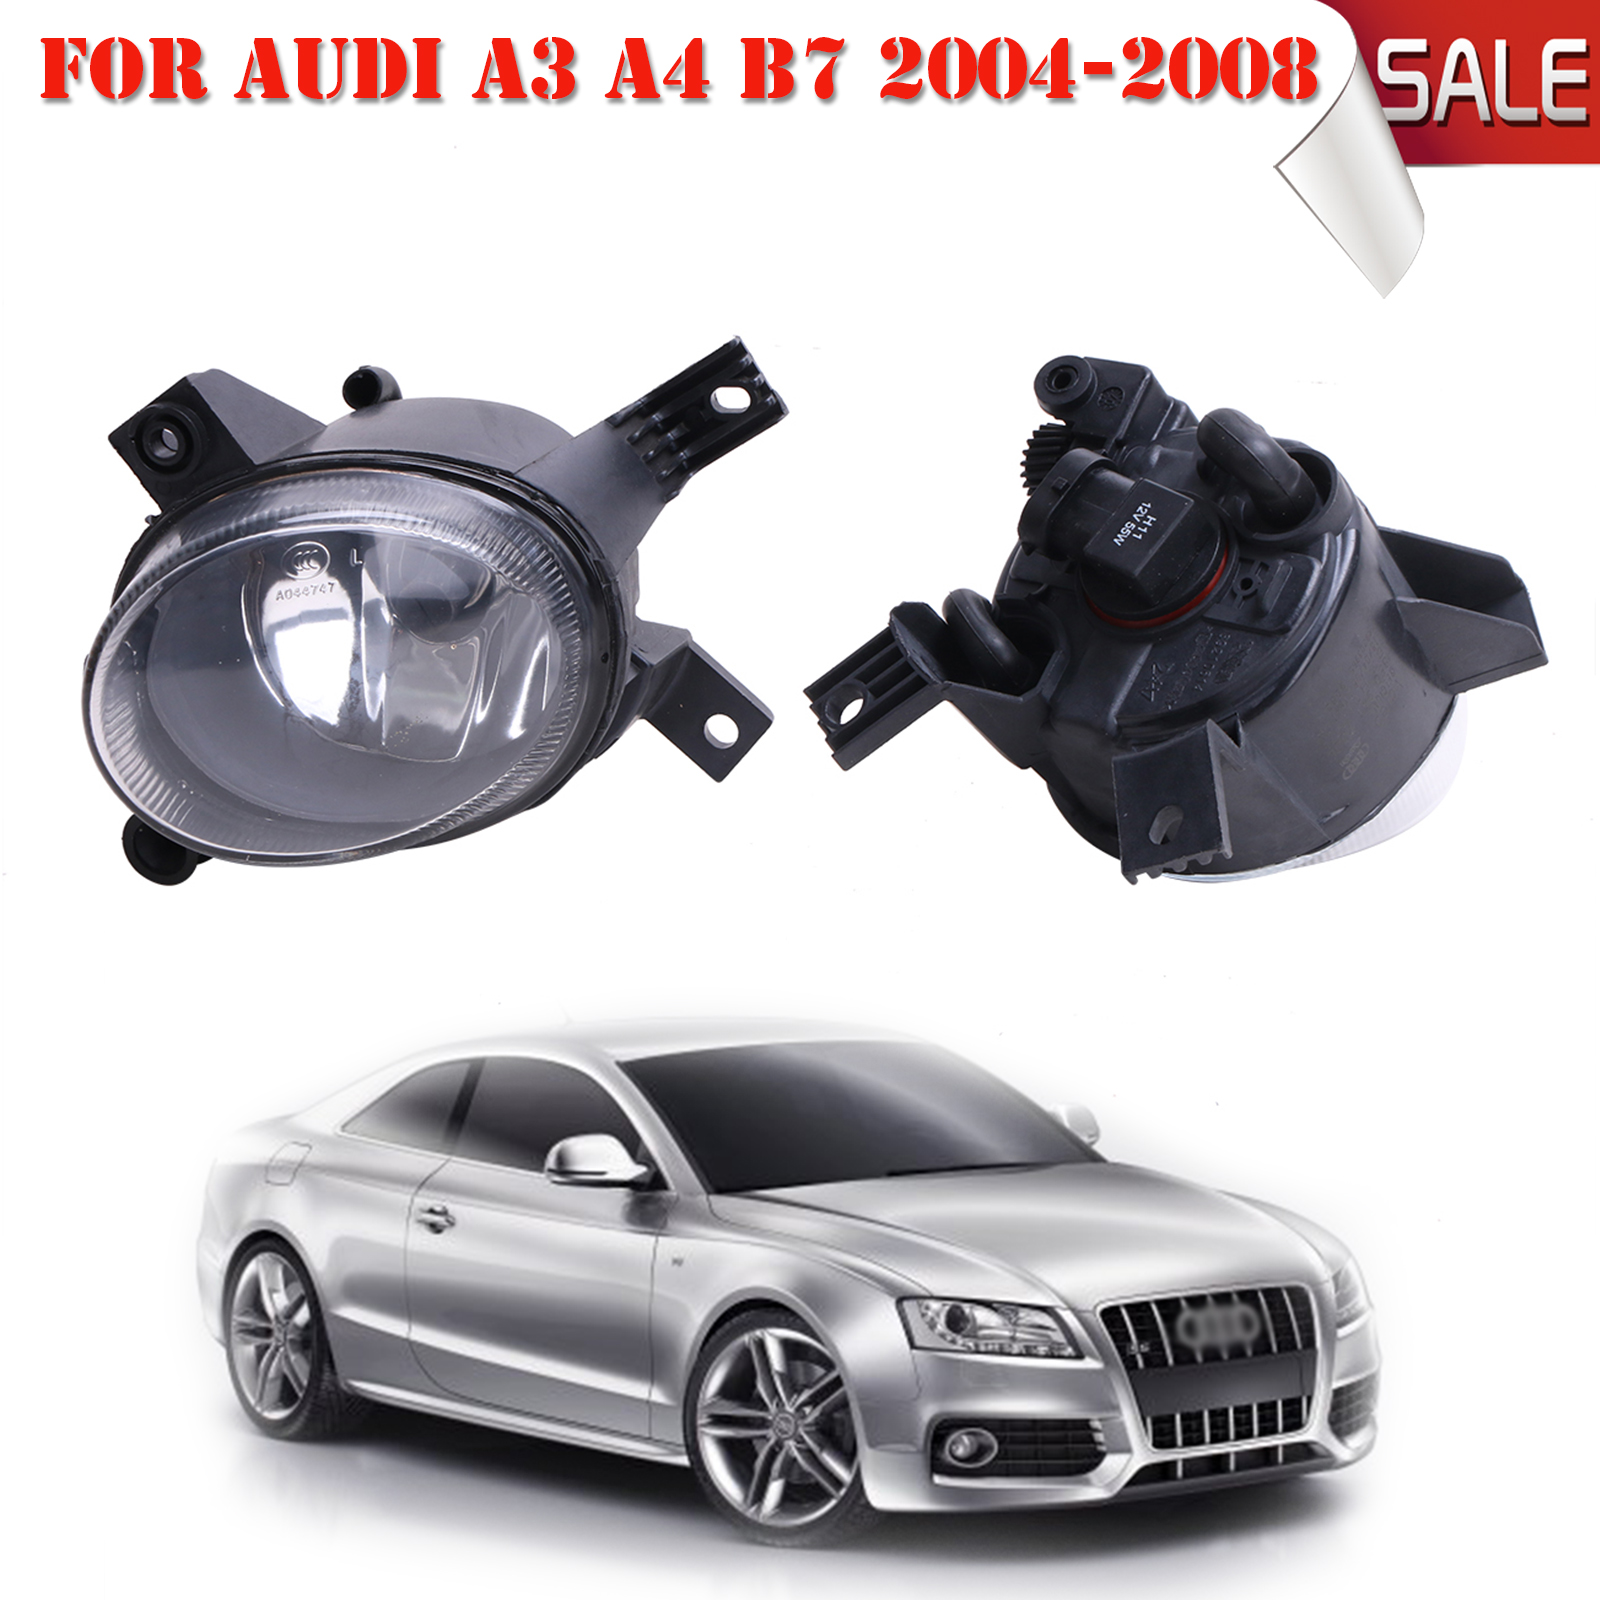 For Audi A3 A4 B7 2004-2008 Front Fog Light Lamps Left & Right OEM 8E0941700 + 8E0941699 Car Accessory #P318 right side front fog light headlight for audi a3 s3 s line a4 b7 2004 2005 2006 2007 2008 oem 8e0941700 car accessory p318 r